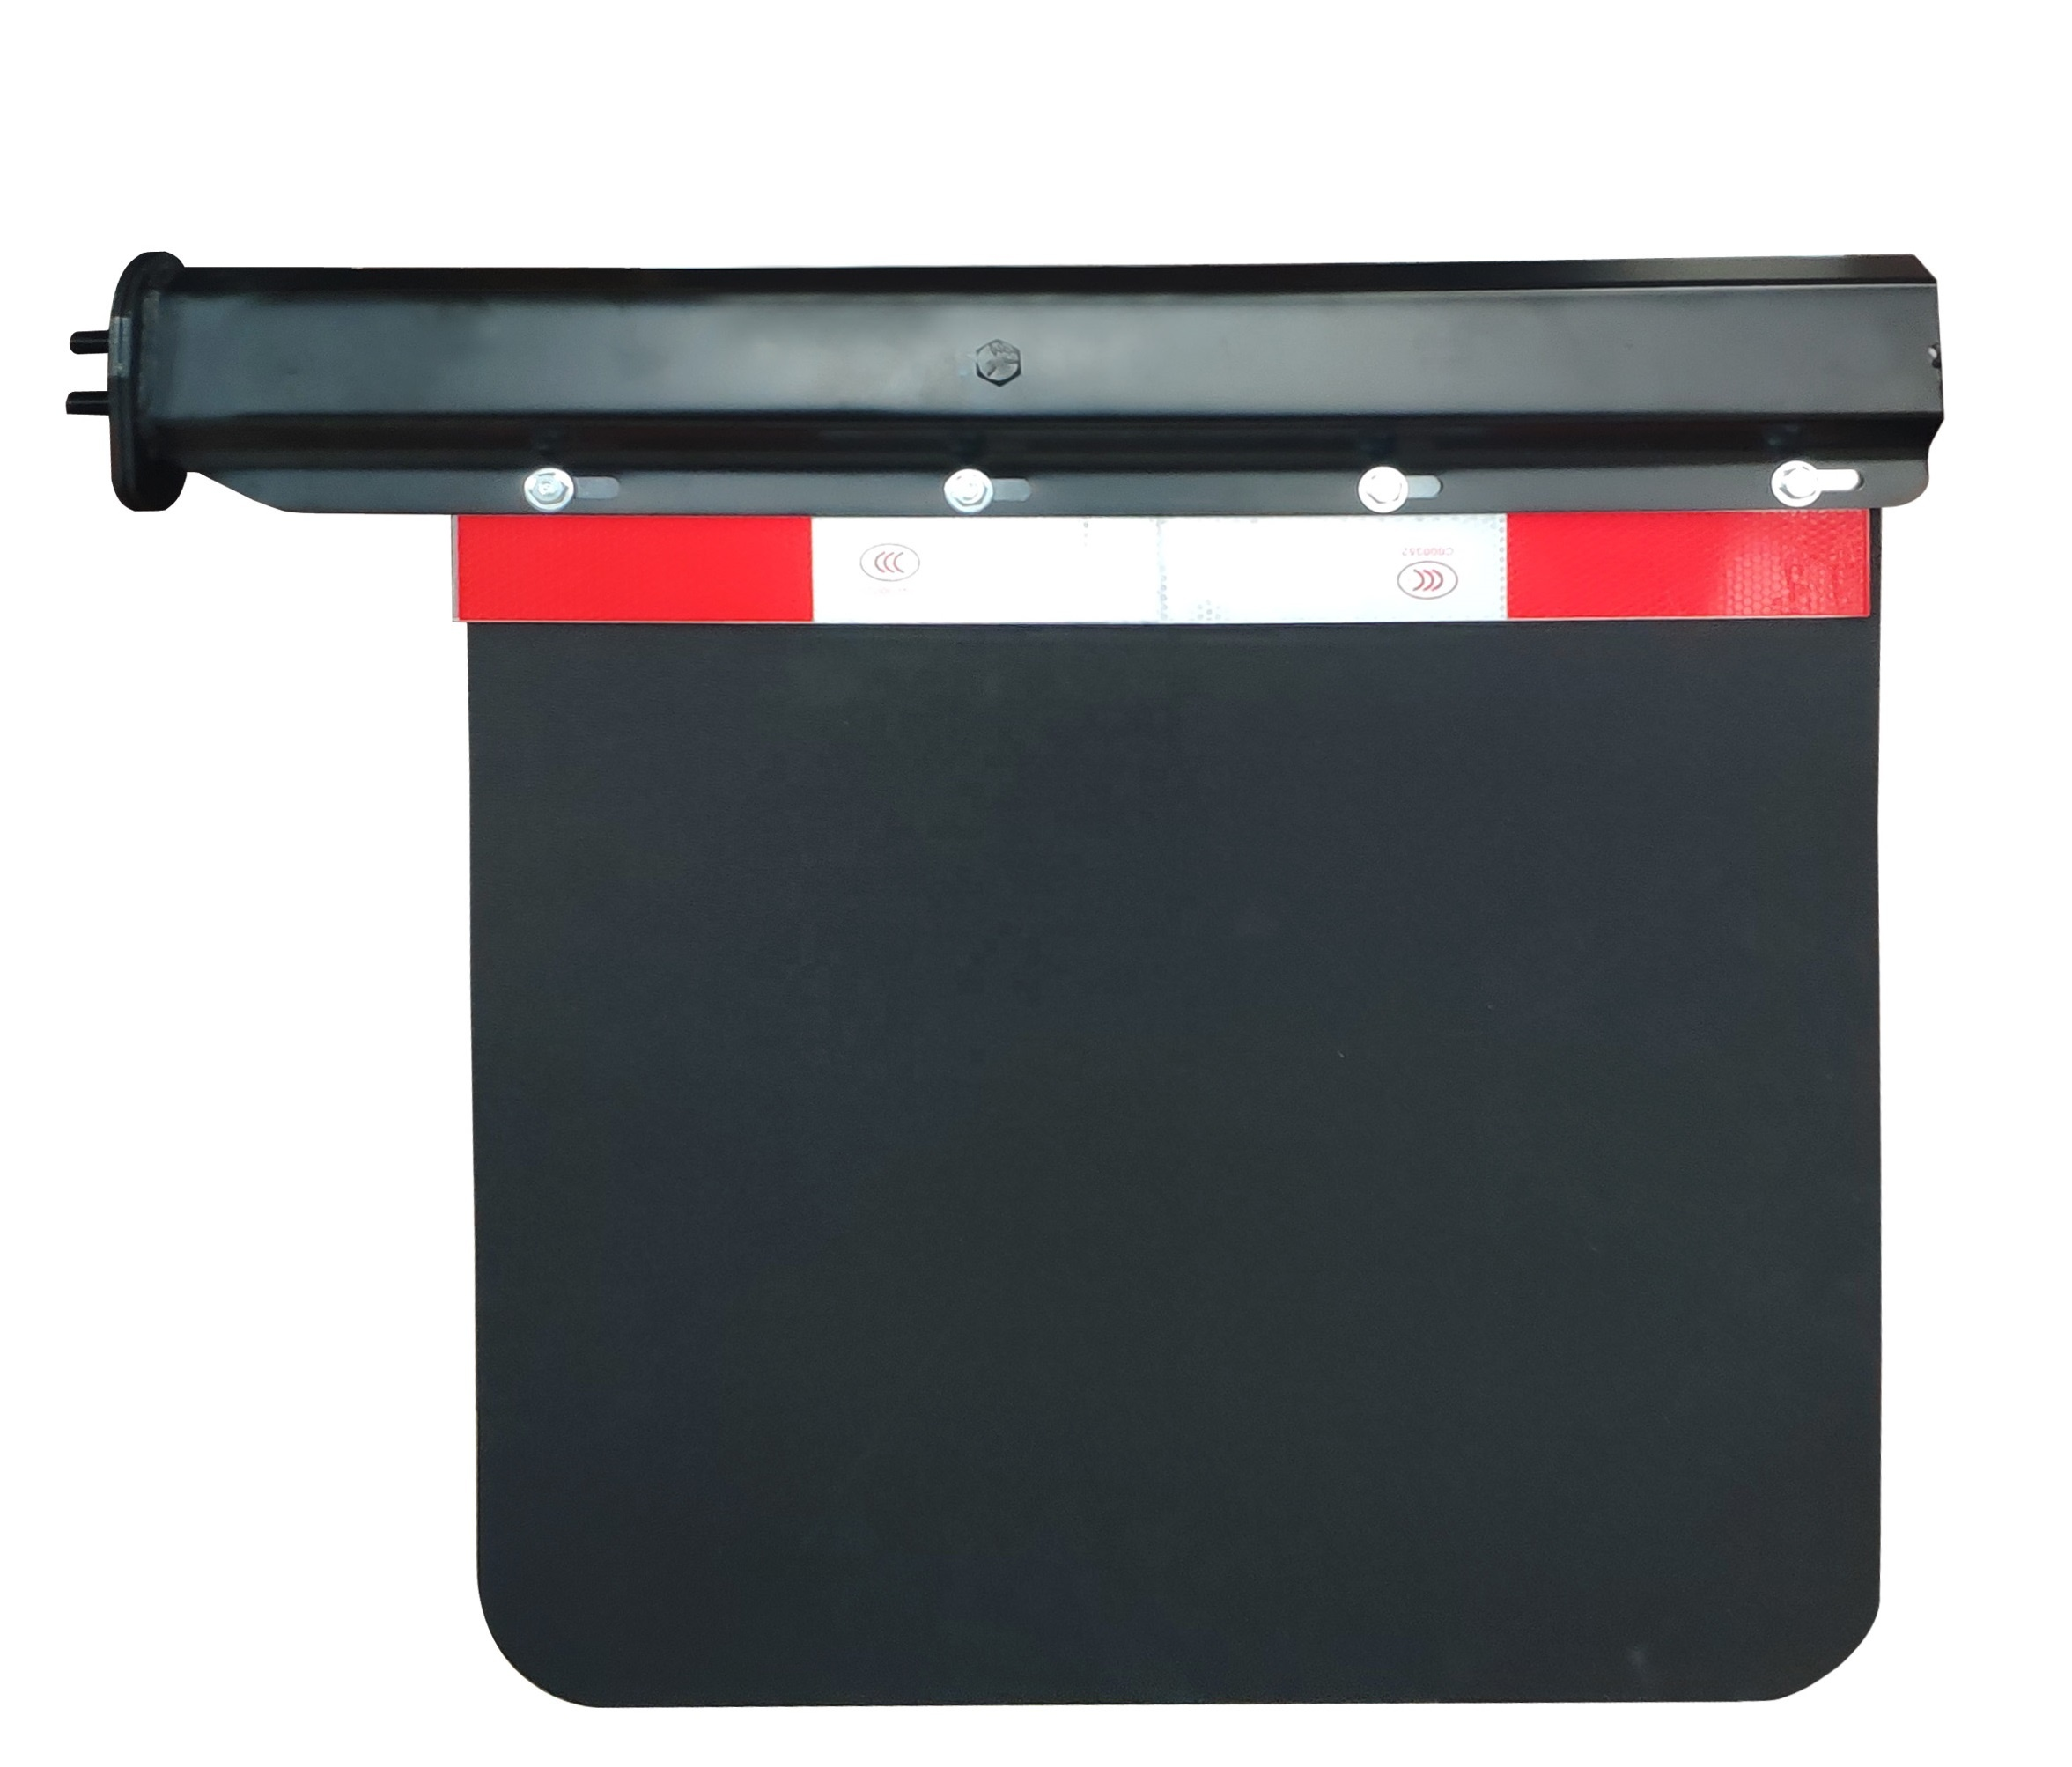 Mud Flaps Customized mudflaps heavy duty truck Colors mudguards fenders Rubber Plastic PVC mud flaps